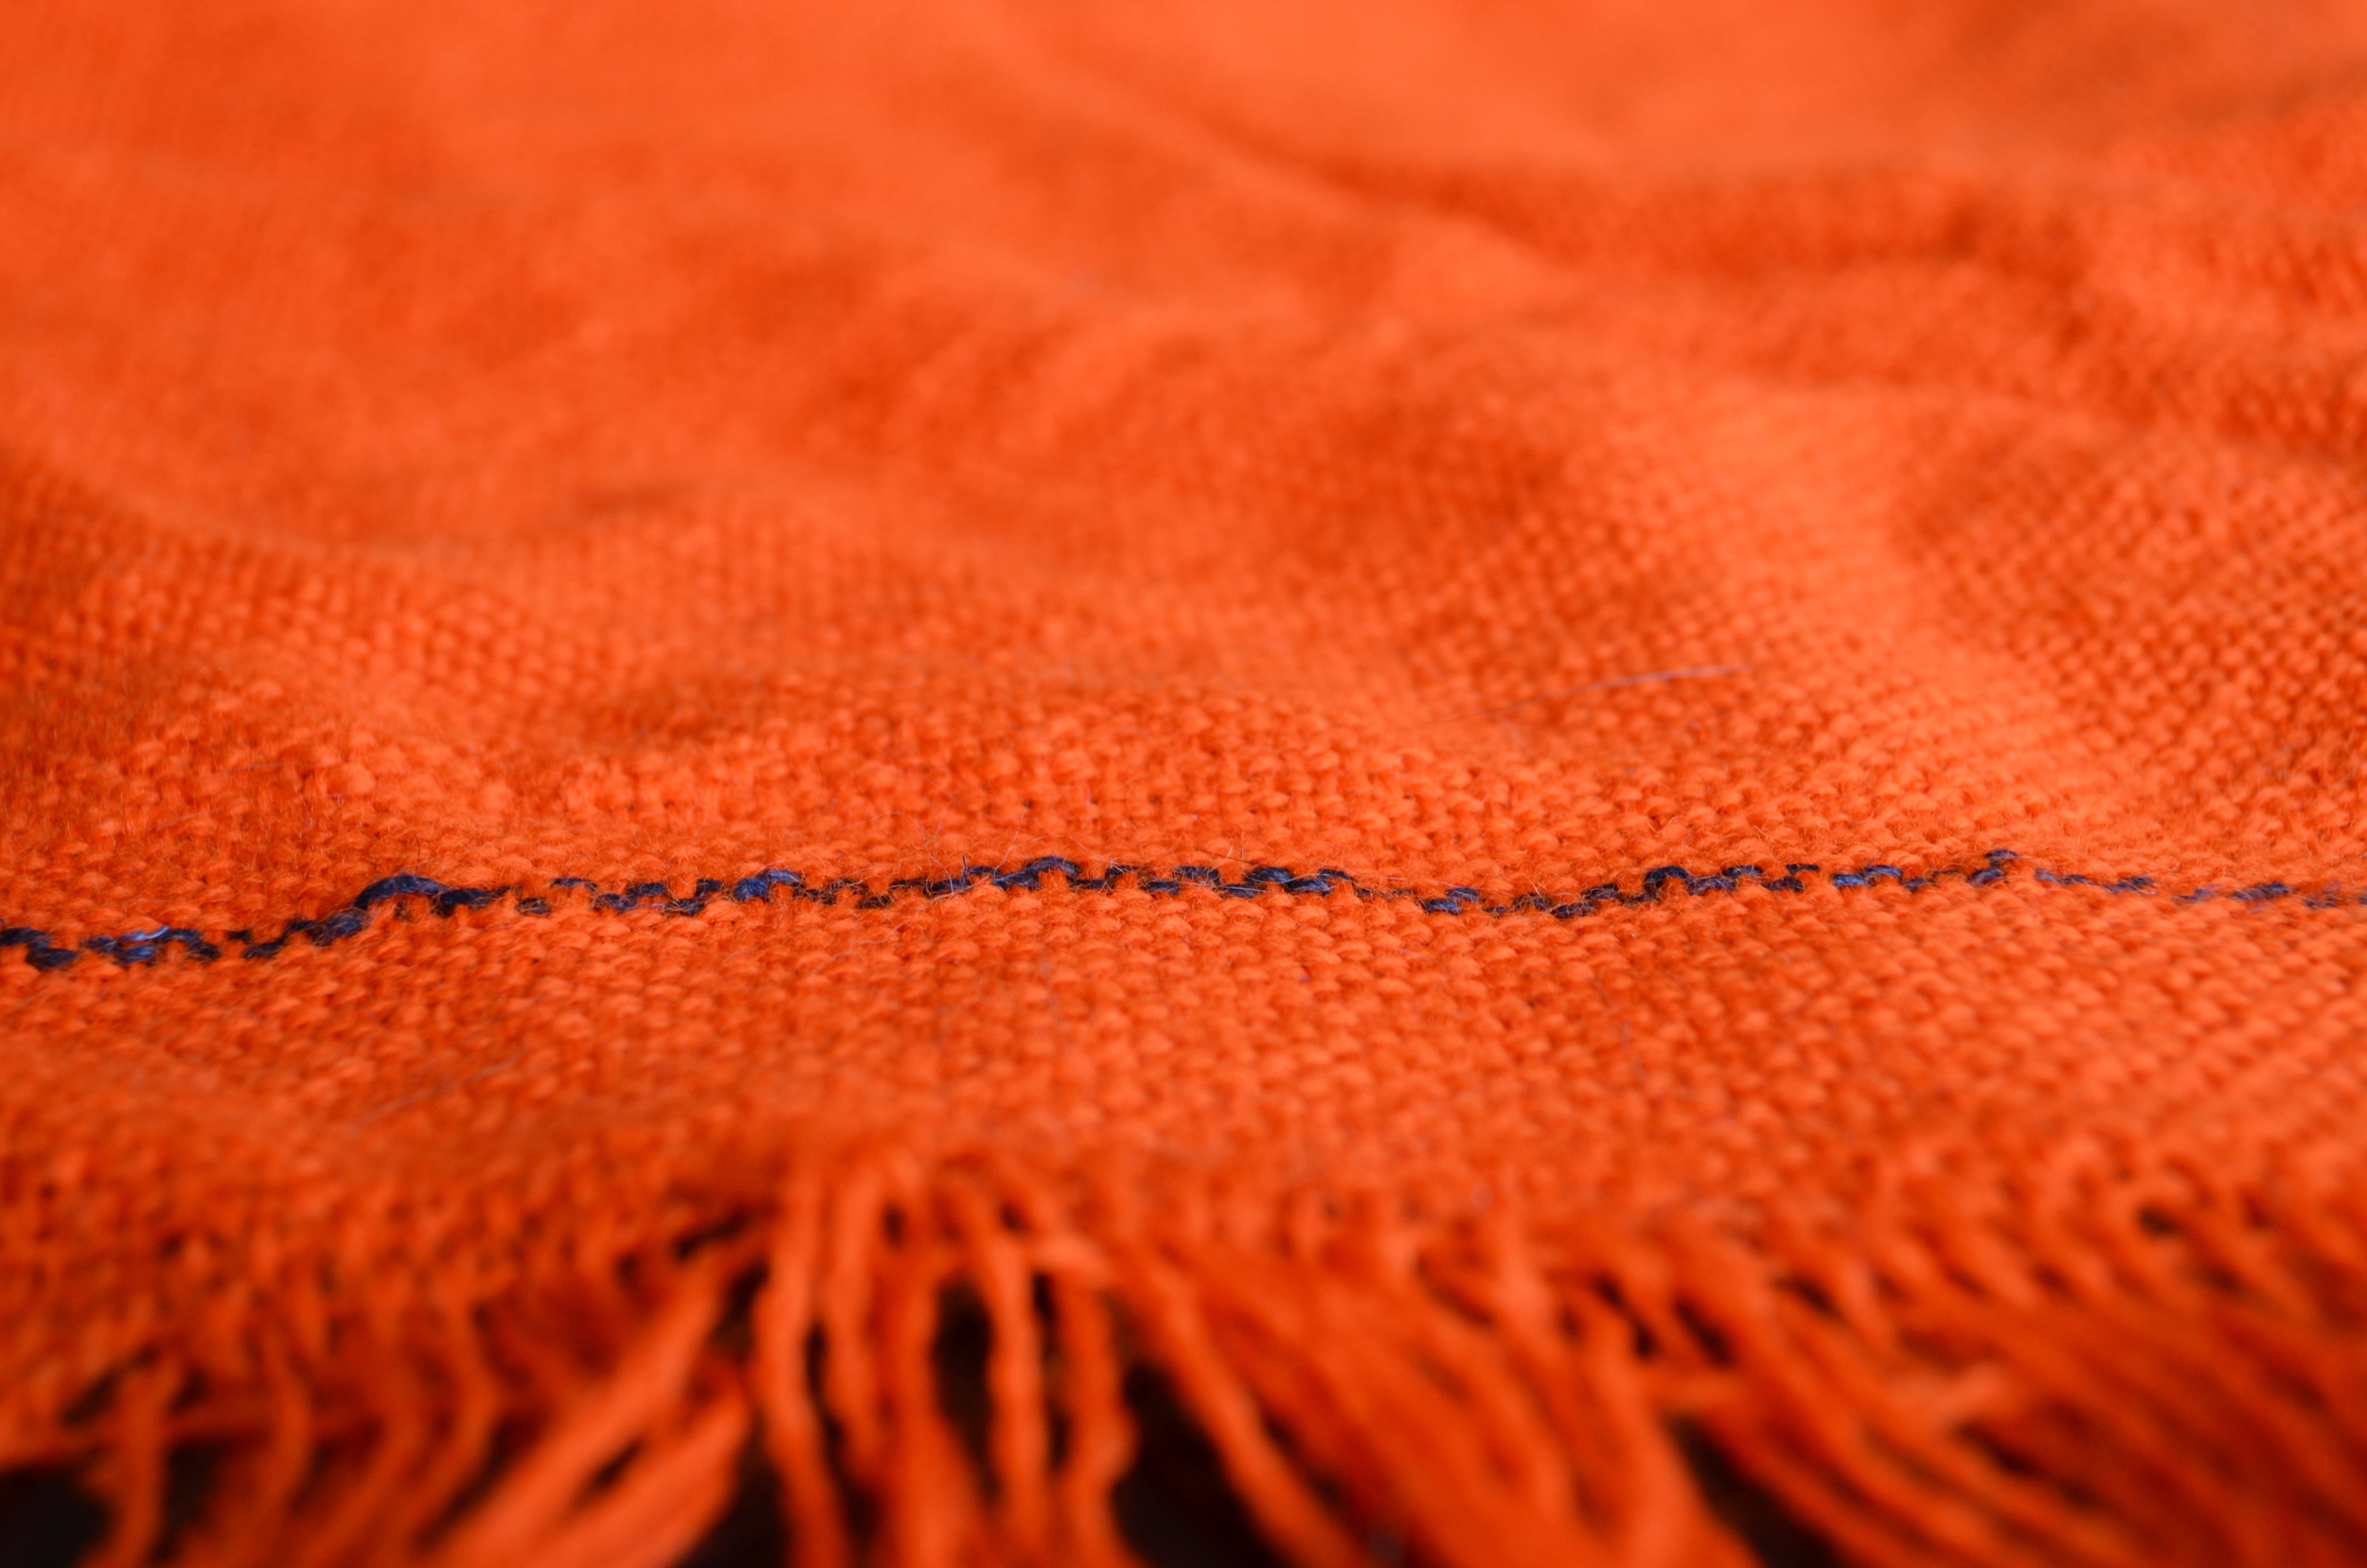 orange yarn / weaving / warp or weft / warporweft.com